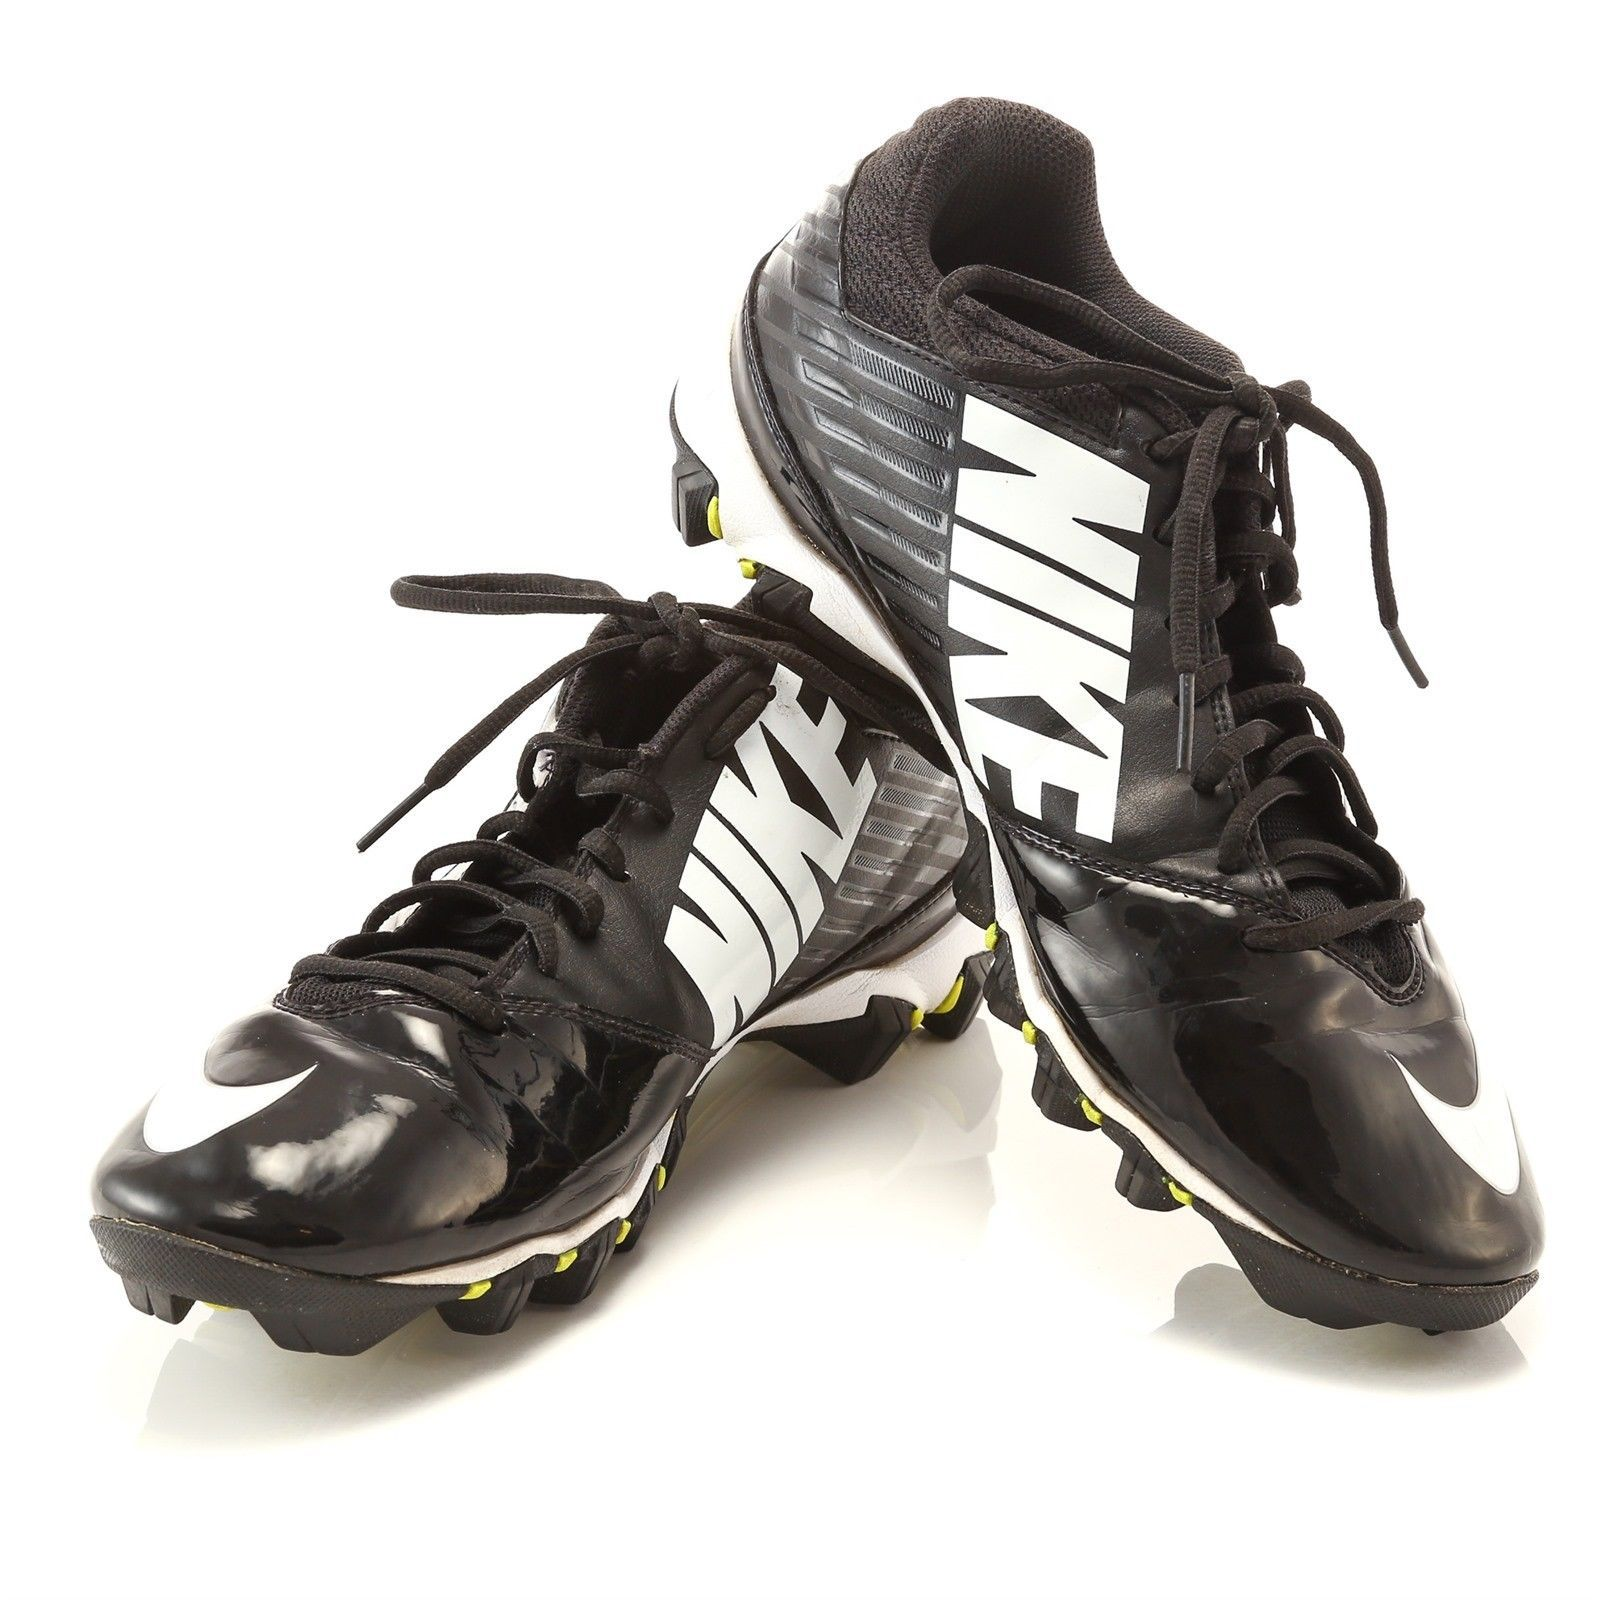 9749f5f9869ee Nike Vapor Shark Black White Football Cleats and 50 similar items